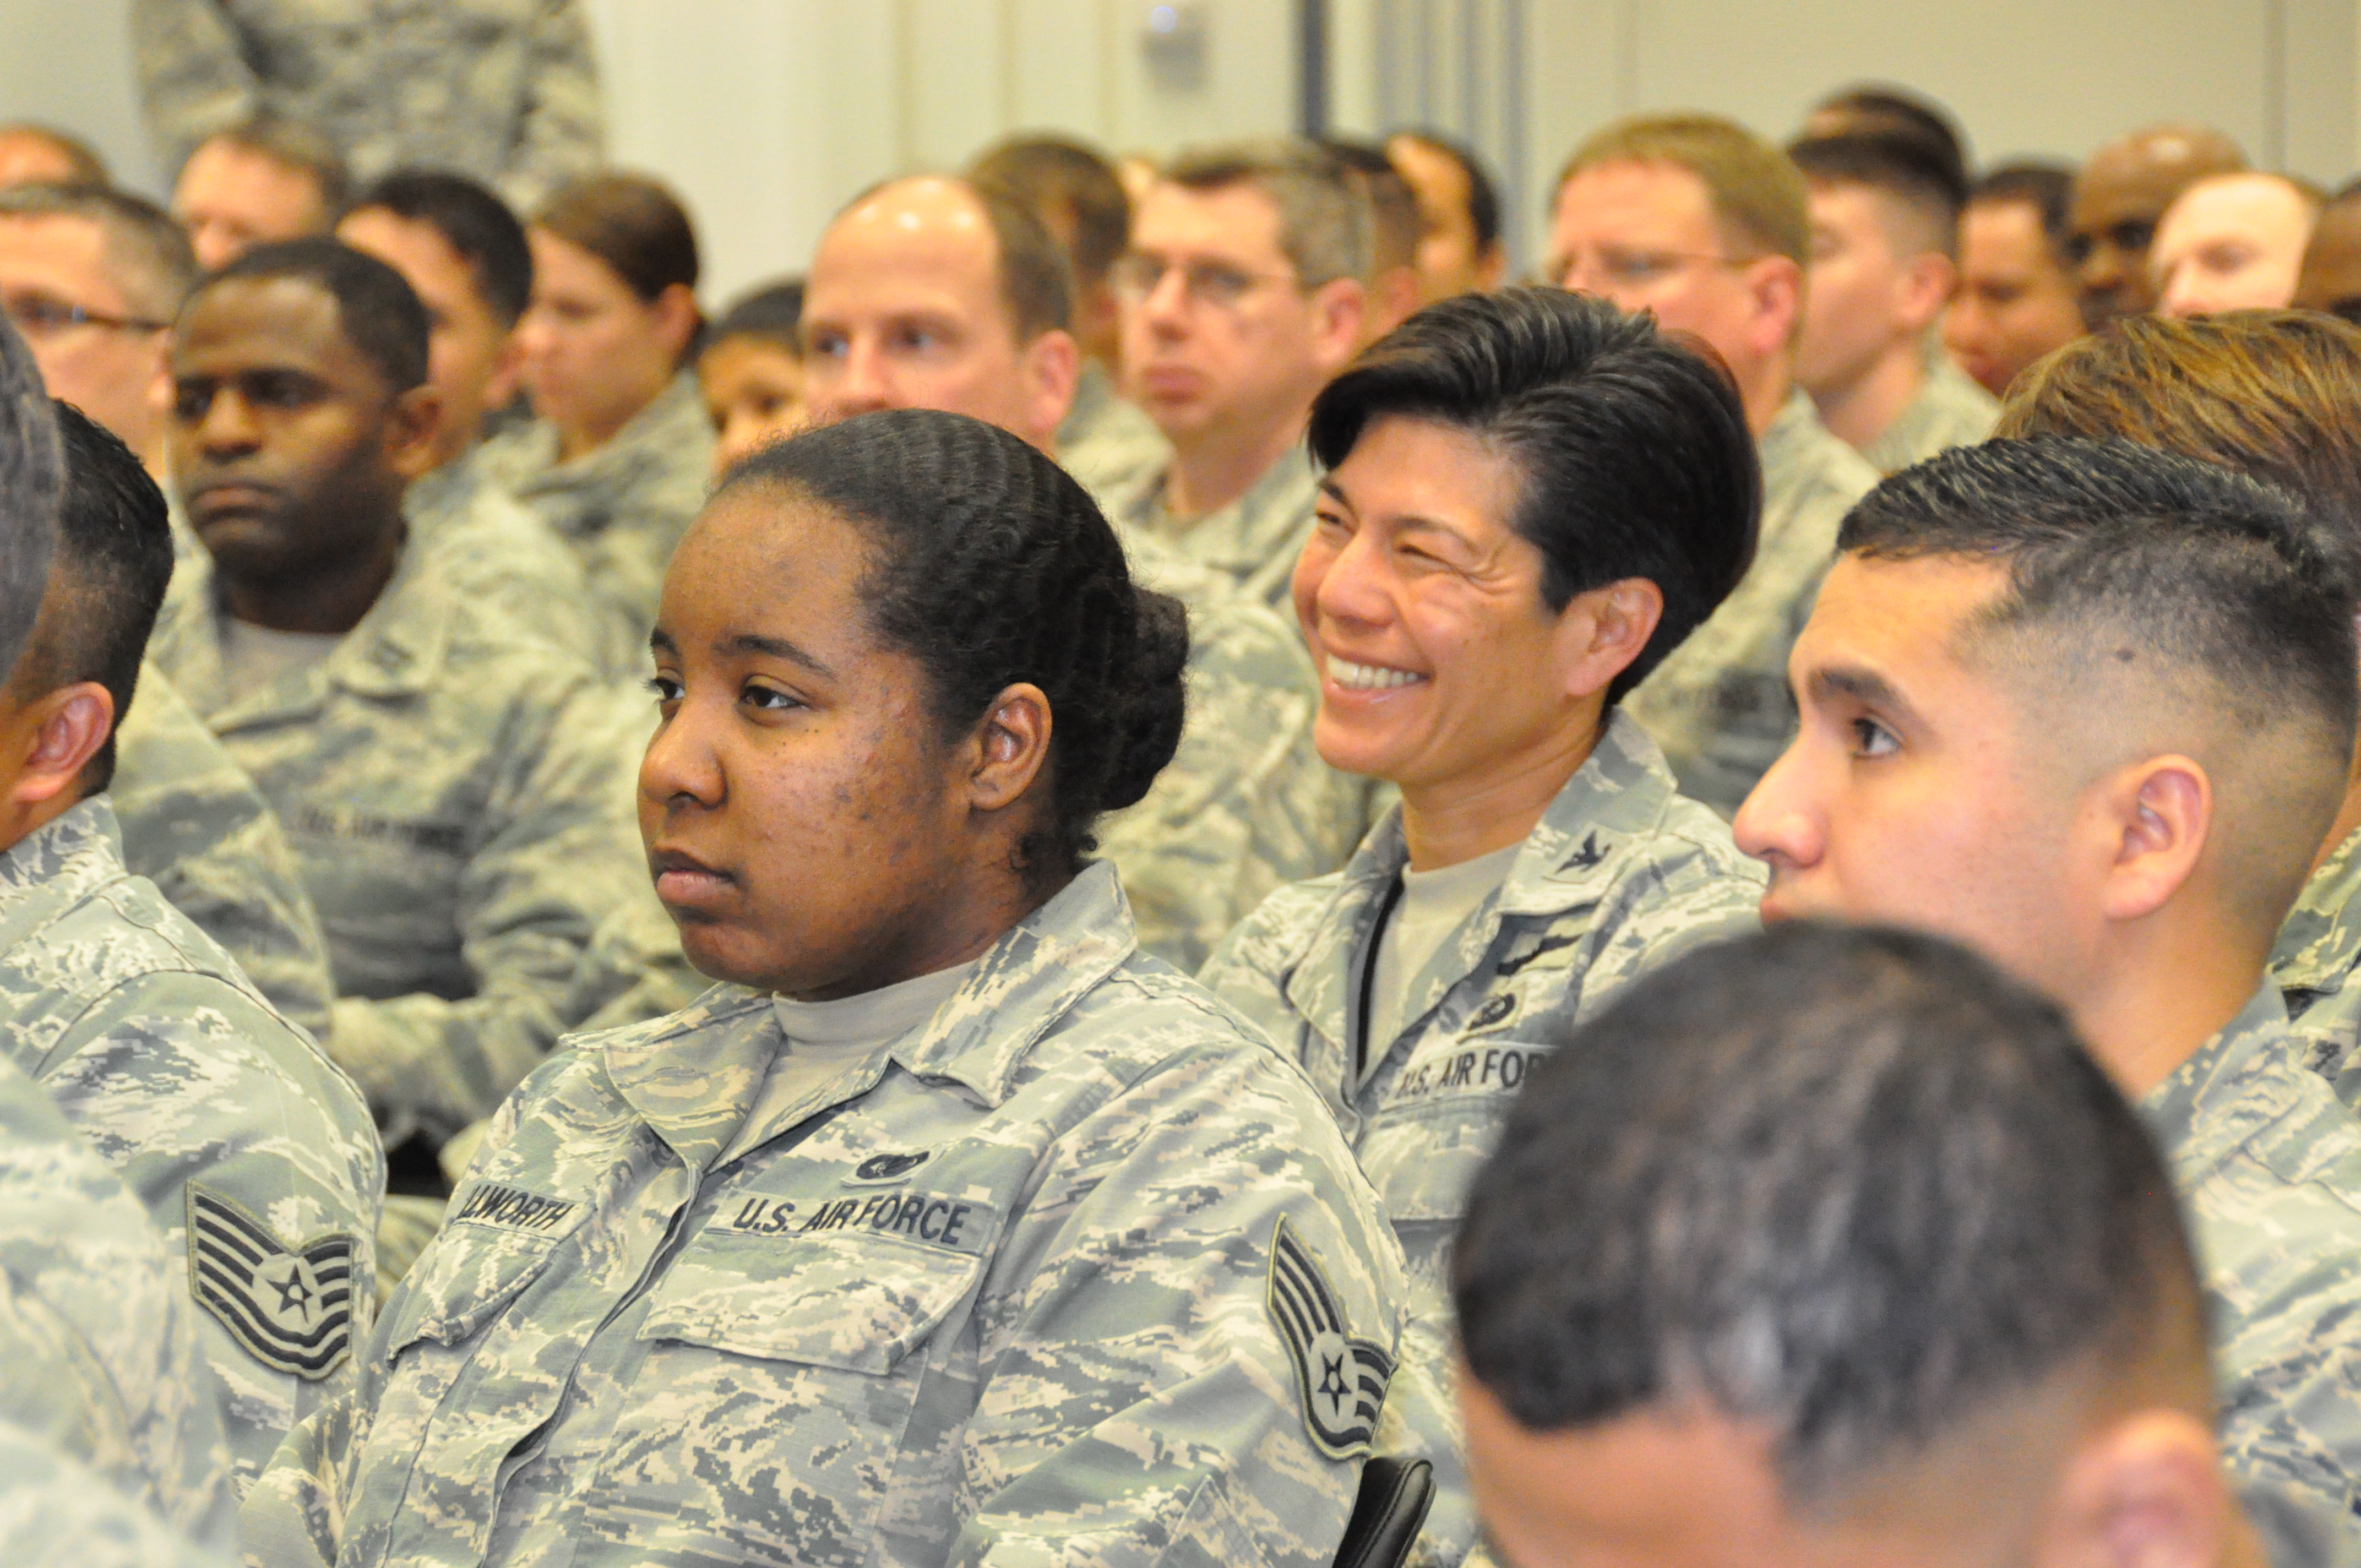 U.S. Airmen stationed in Stuttgart, Germany attend an Airmen's Call with Secretary of the Air Force Deborah Lee James. More than 150 Airmen were able to hear about the Secretary's top priorities for the Air Force, and to engage in a question-and-answer session on Nov. 18, 2015. (U.S. Africa Command photo by Brenda Law/RELEASED)